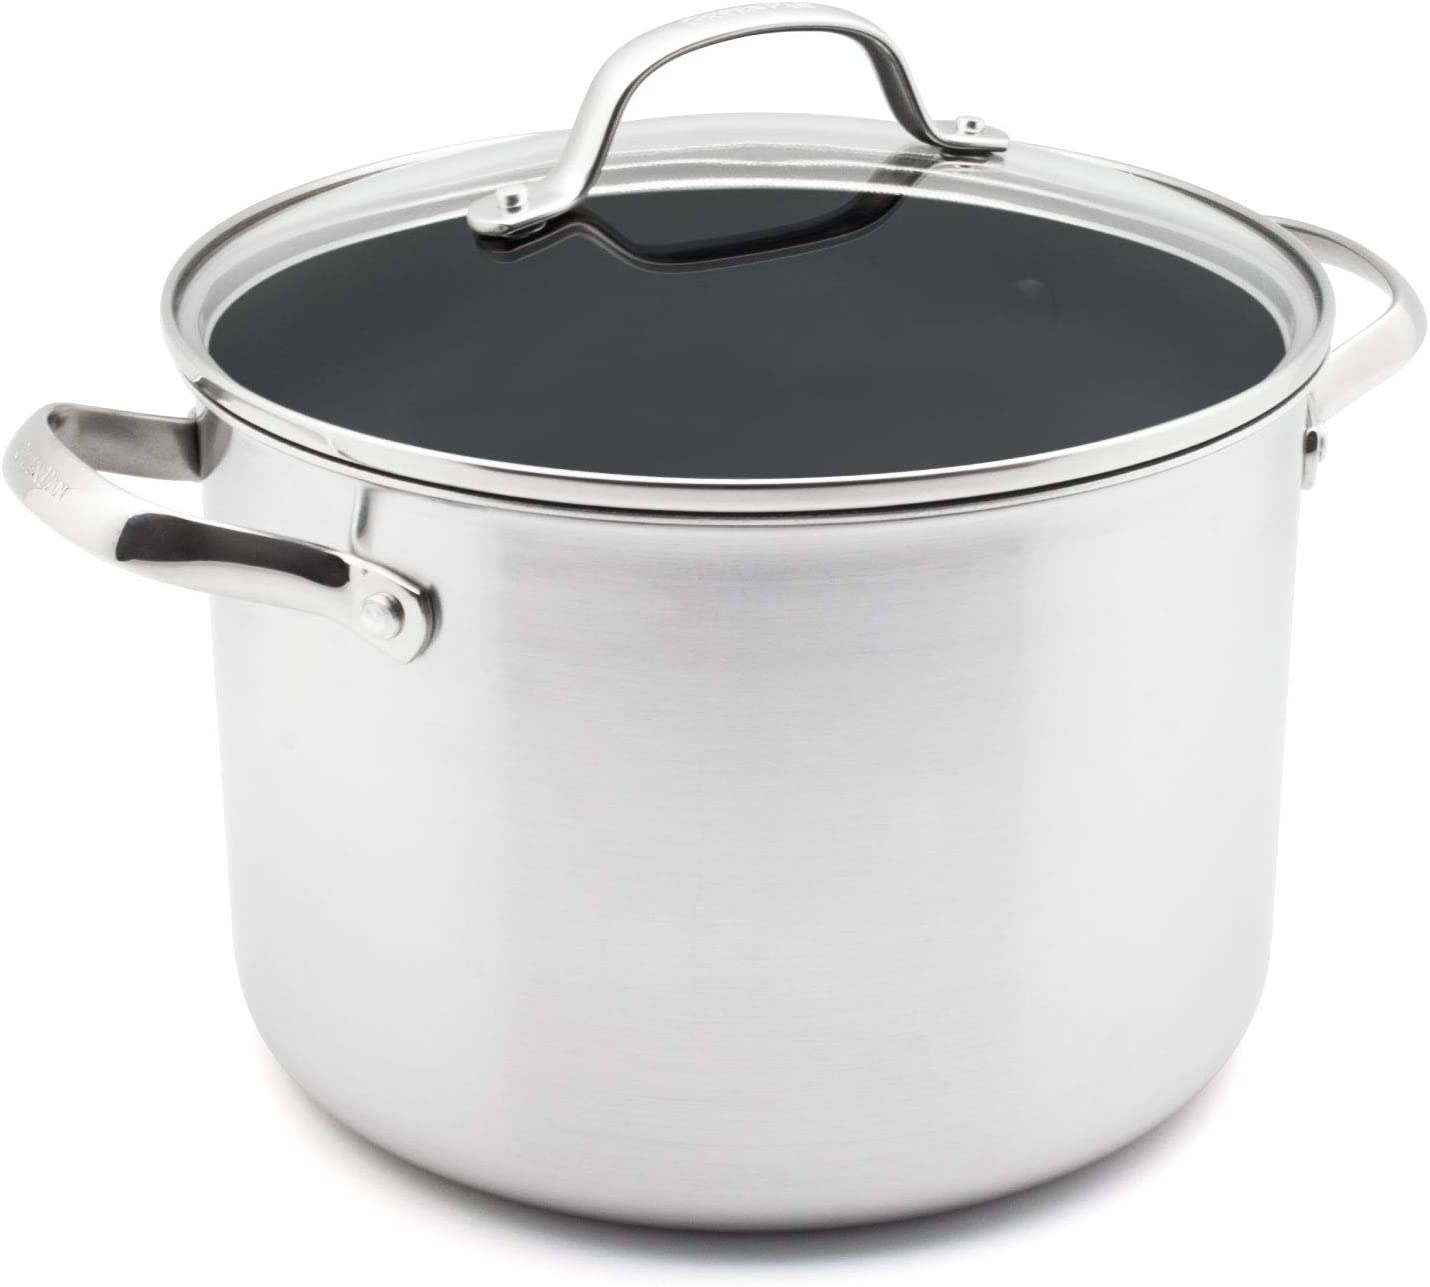 GreenPan Elements Non-Stick Stockpot with Lid, Silver